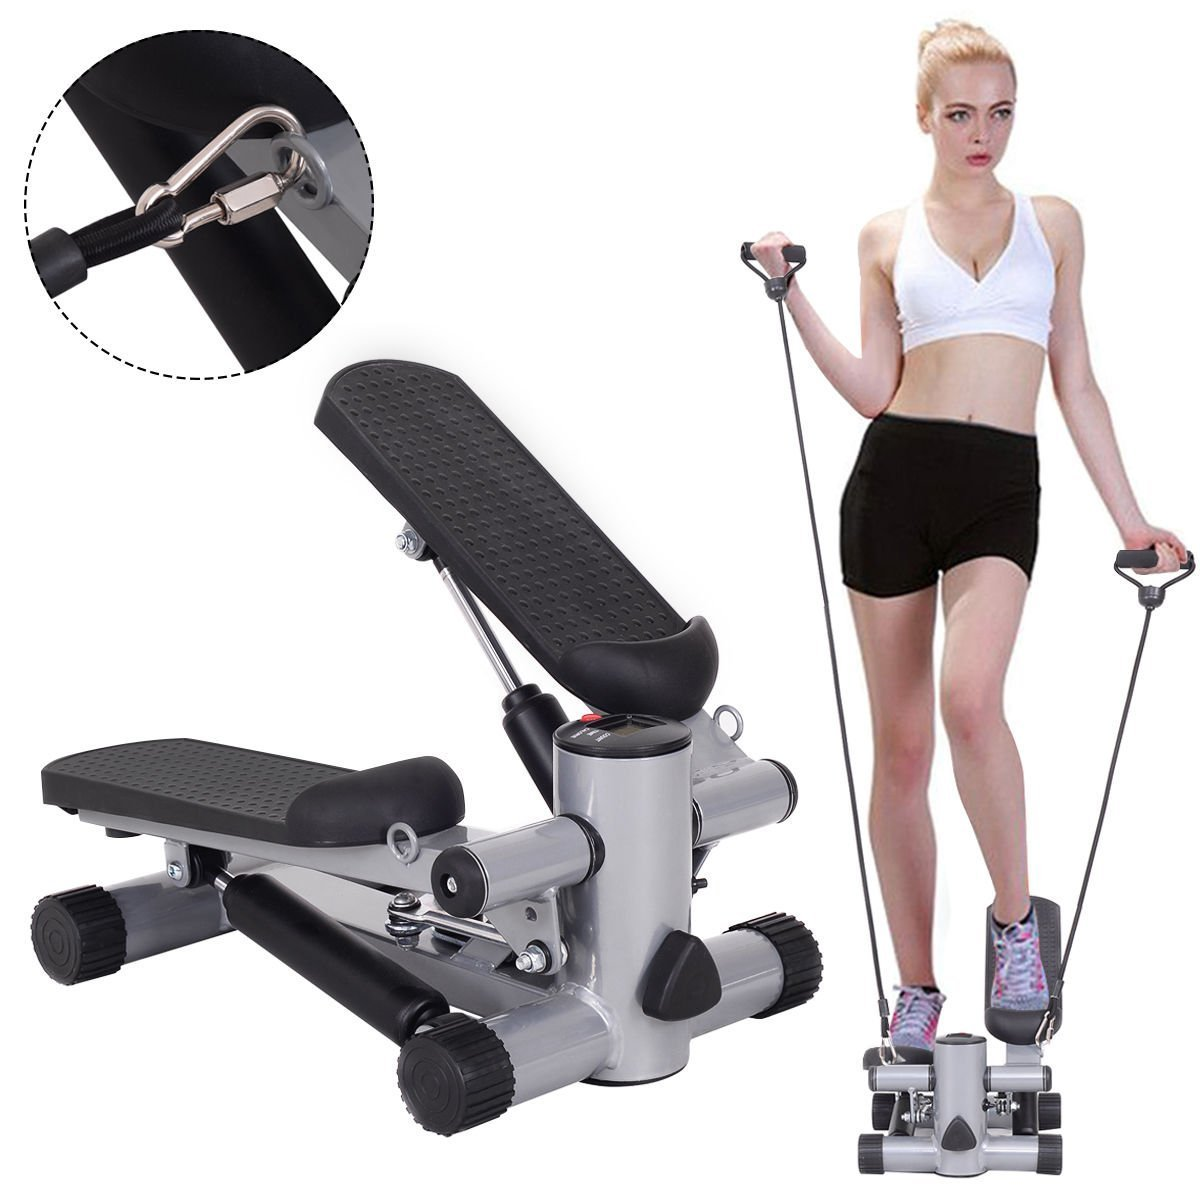 Goplus Step Air Climber Stepper Twister Aerobic Fitness Exercise Machine w/Resistance Band by Goplus